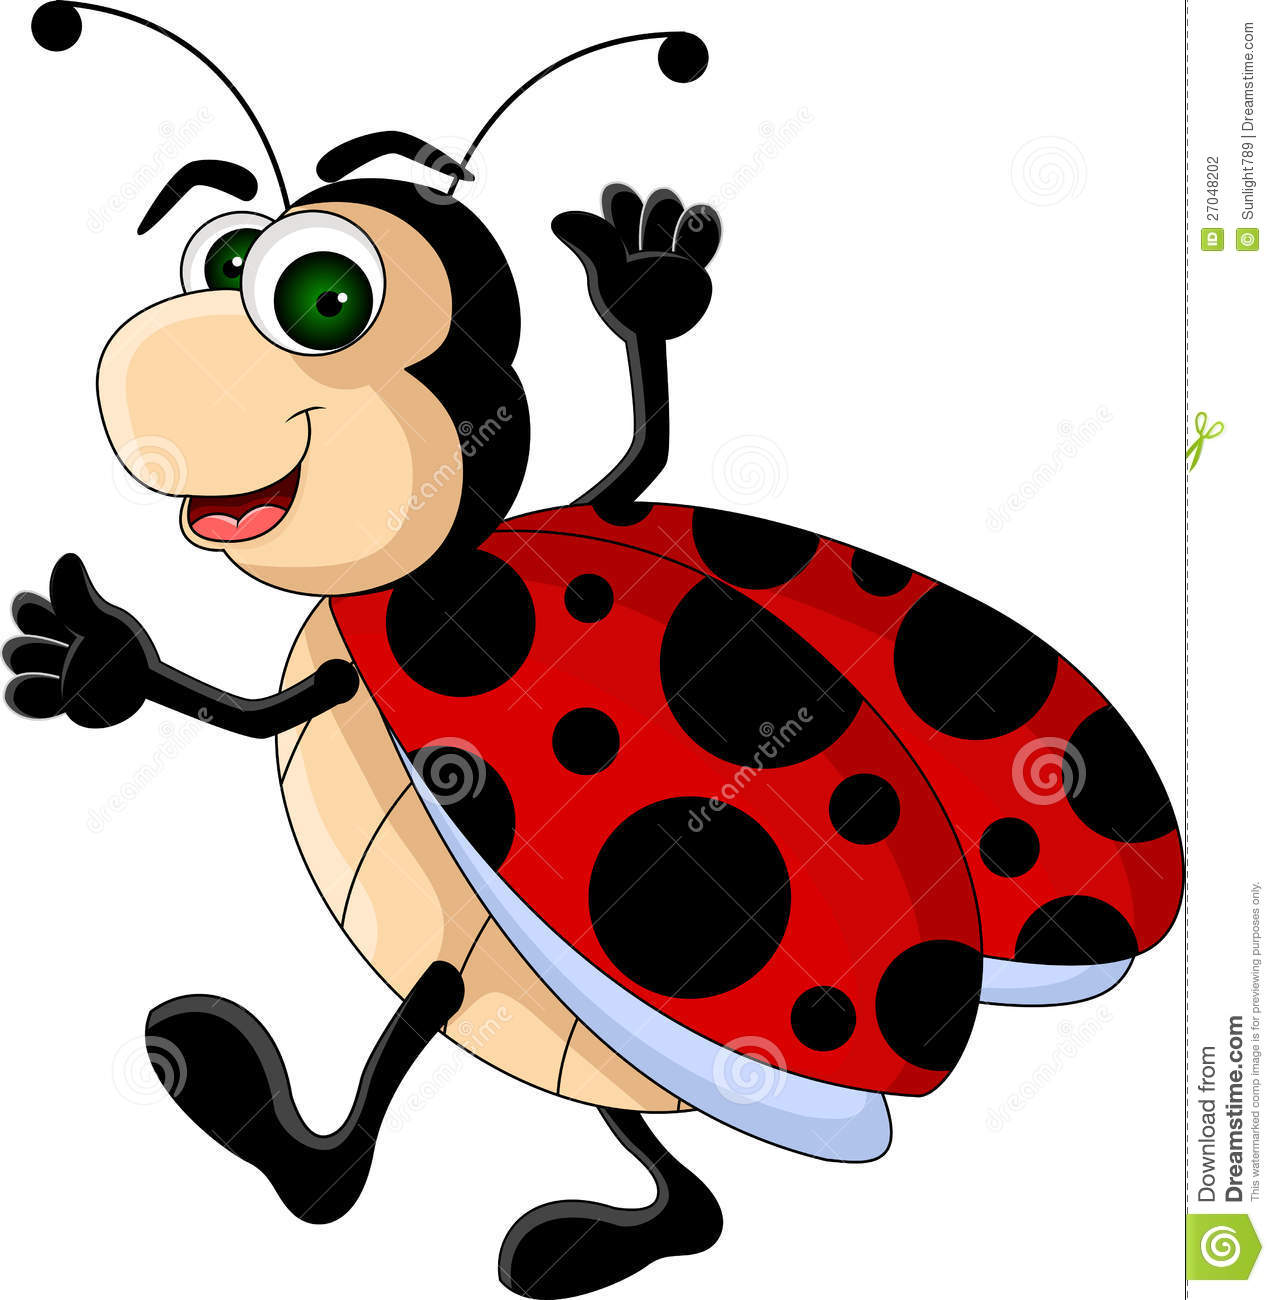 A Cartoon Ladybug funny ladybug cartoon stock illustration. illustration of